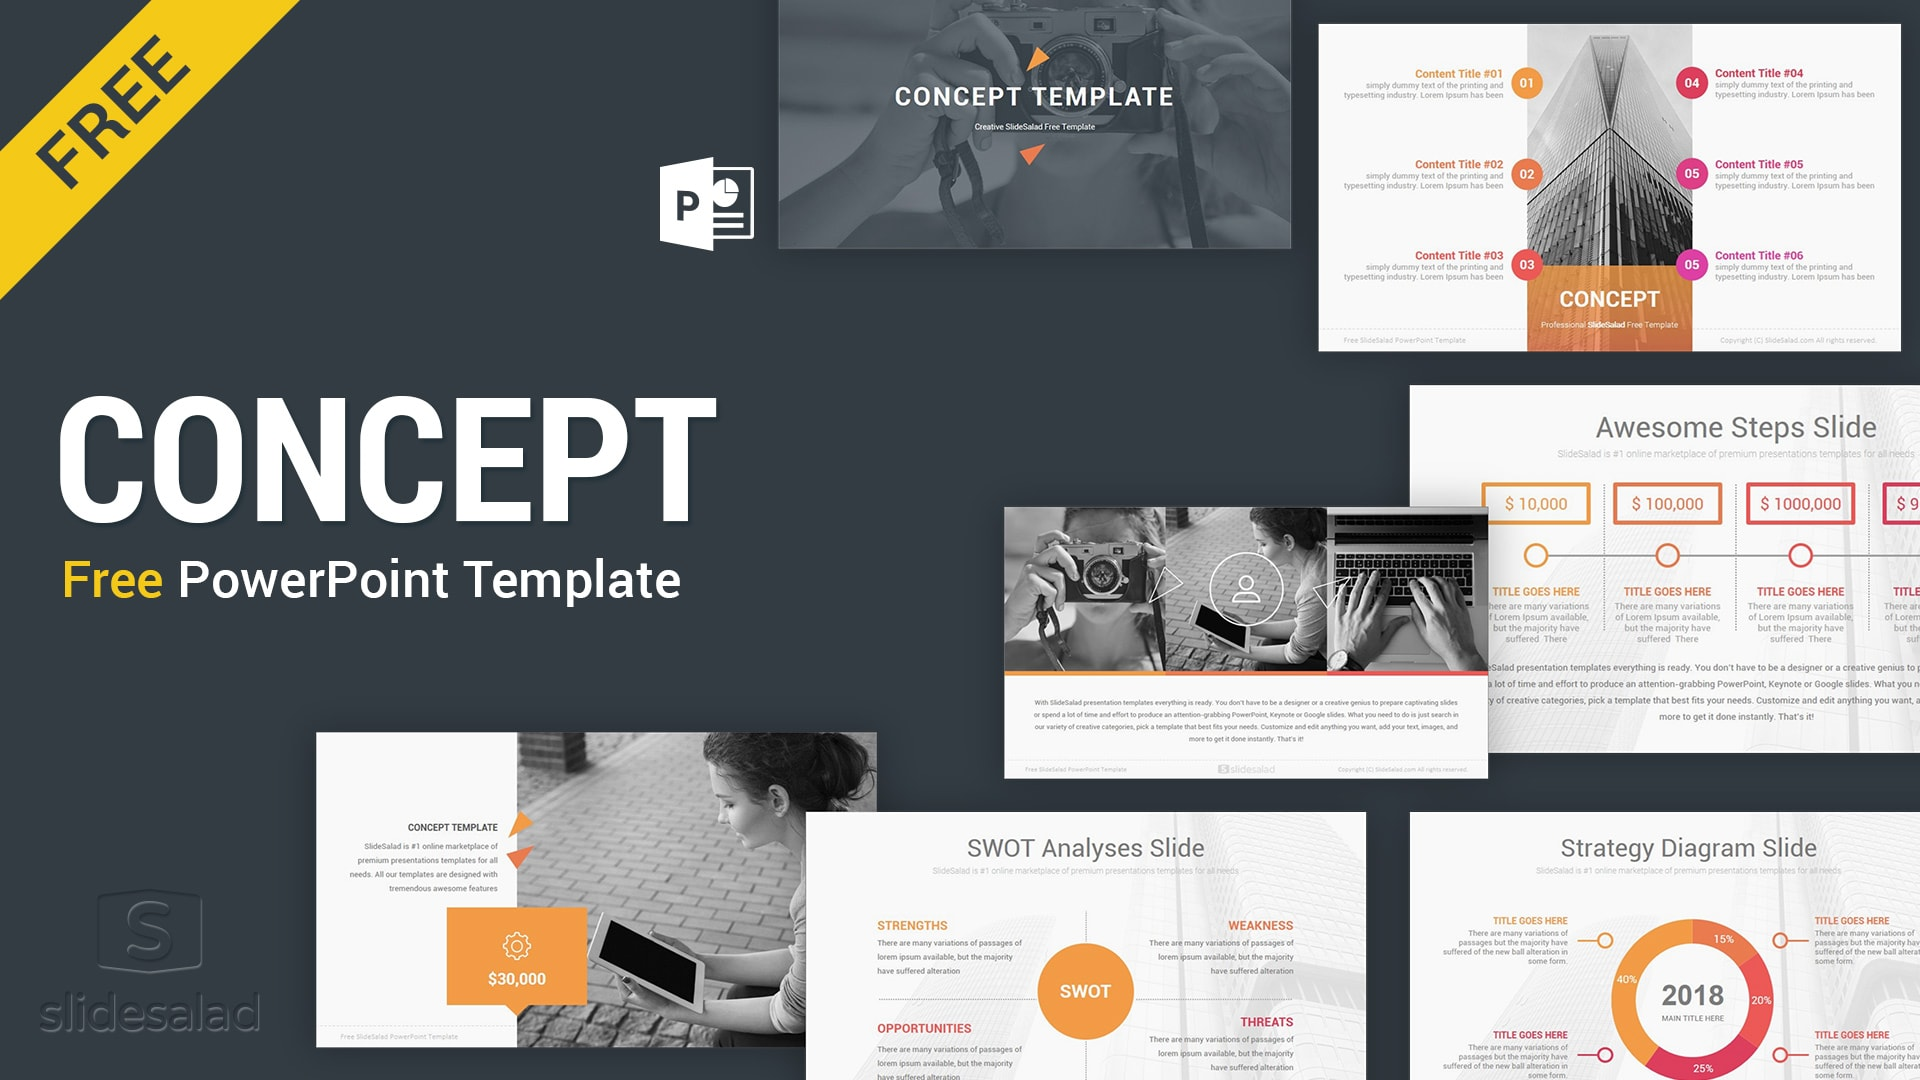 Concept: Free Business Download PowerPoint Templates – Top-rated SWOT Analysis PPT Slideshows